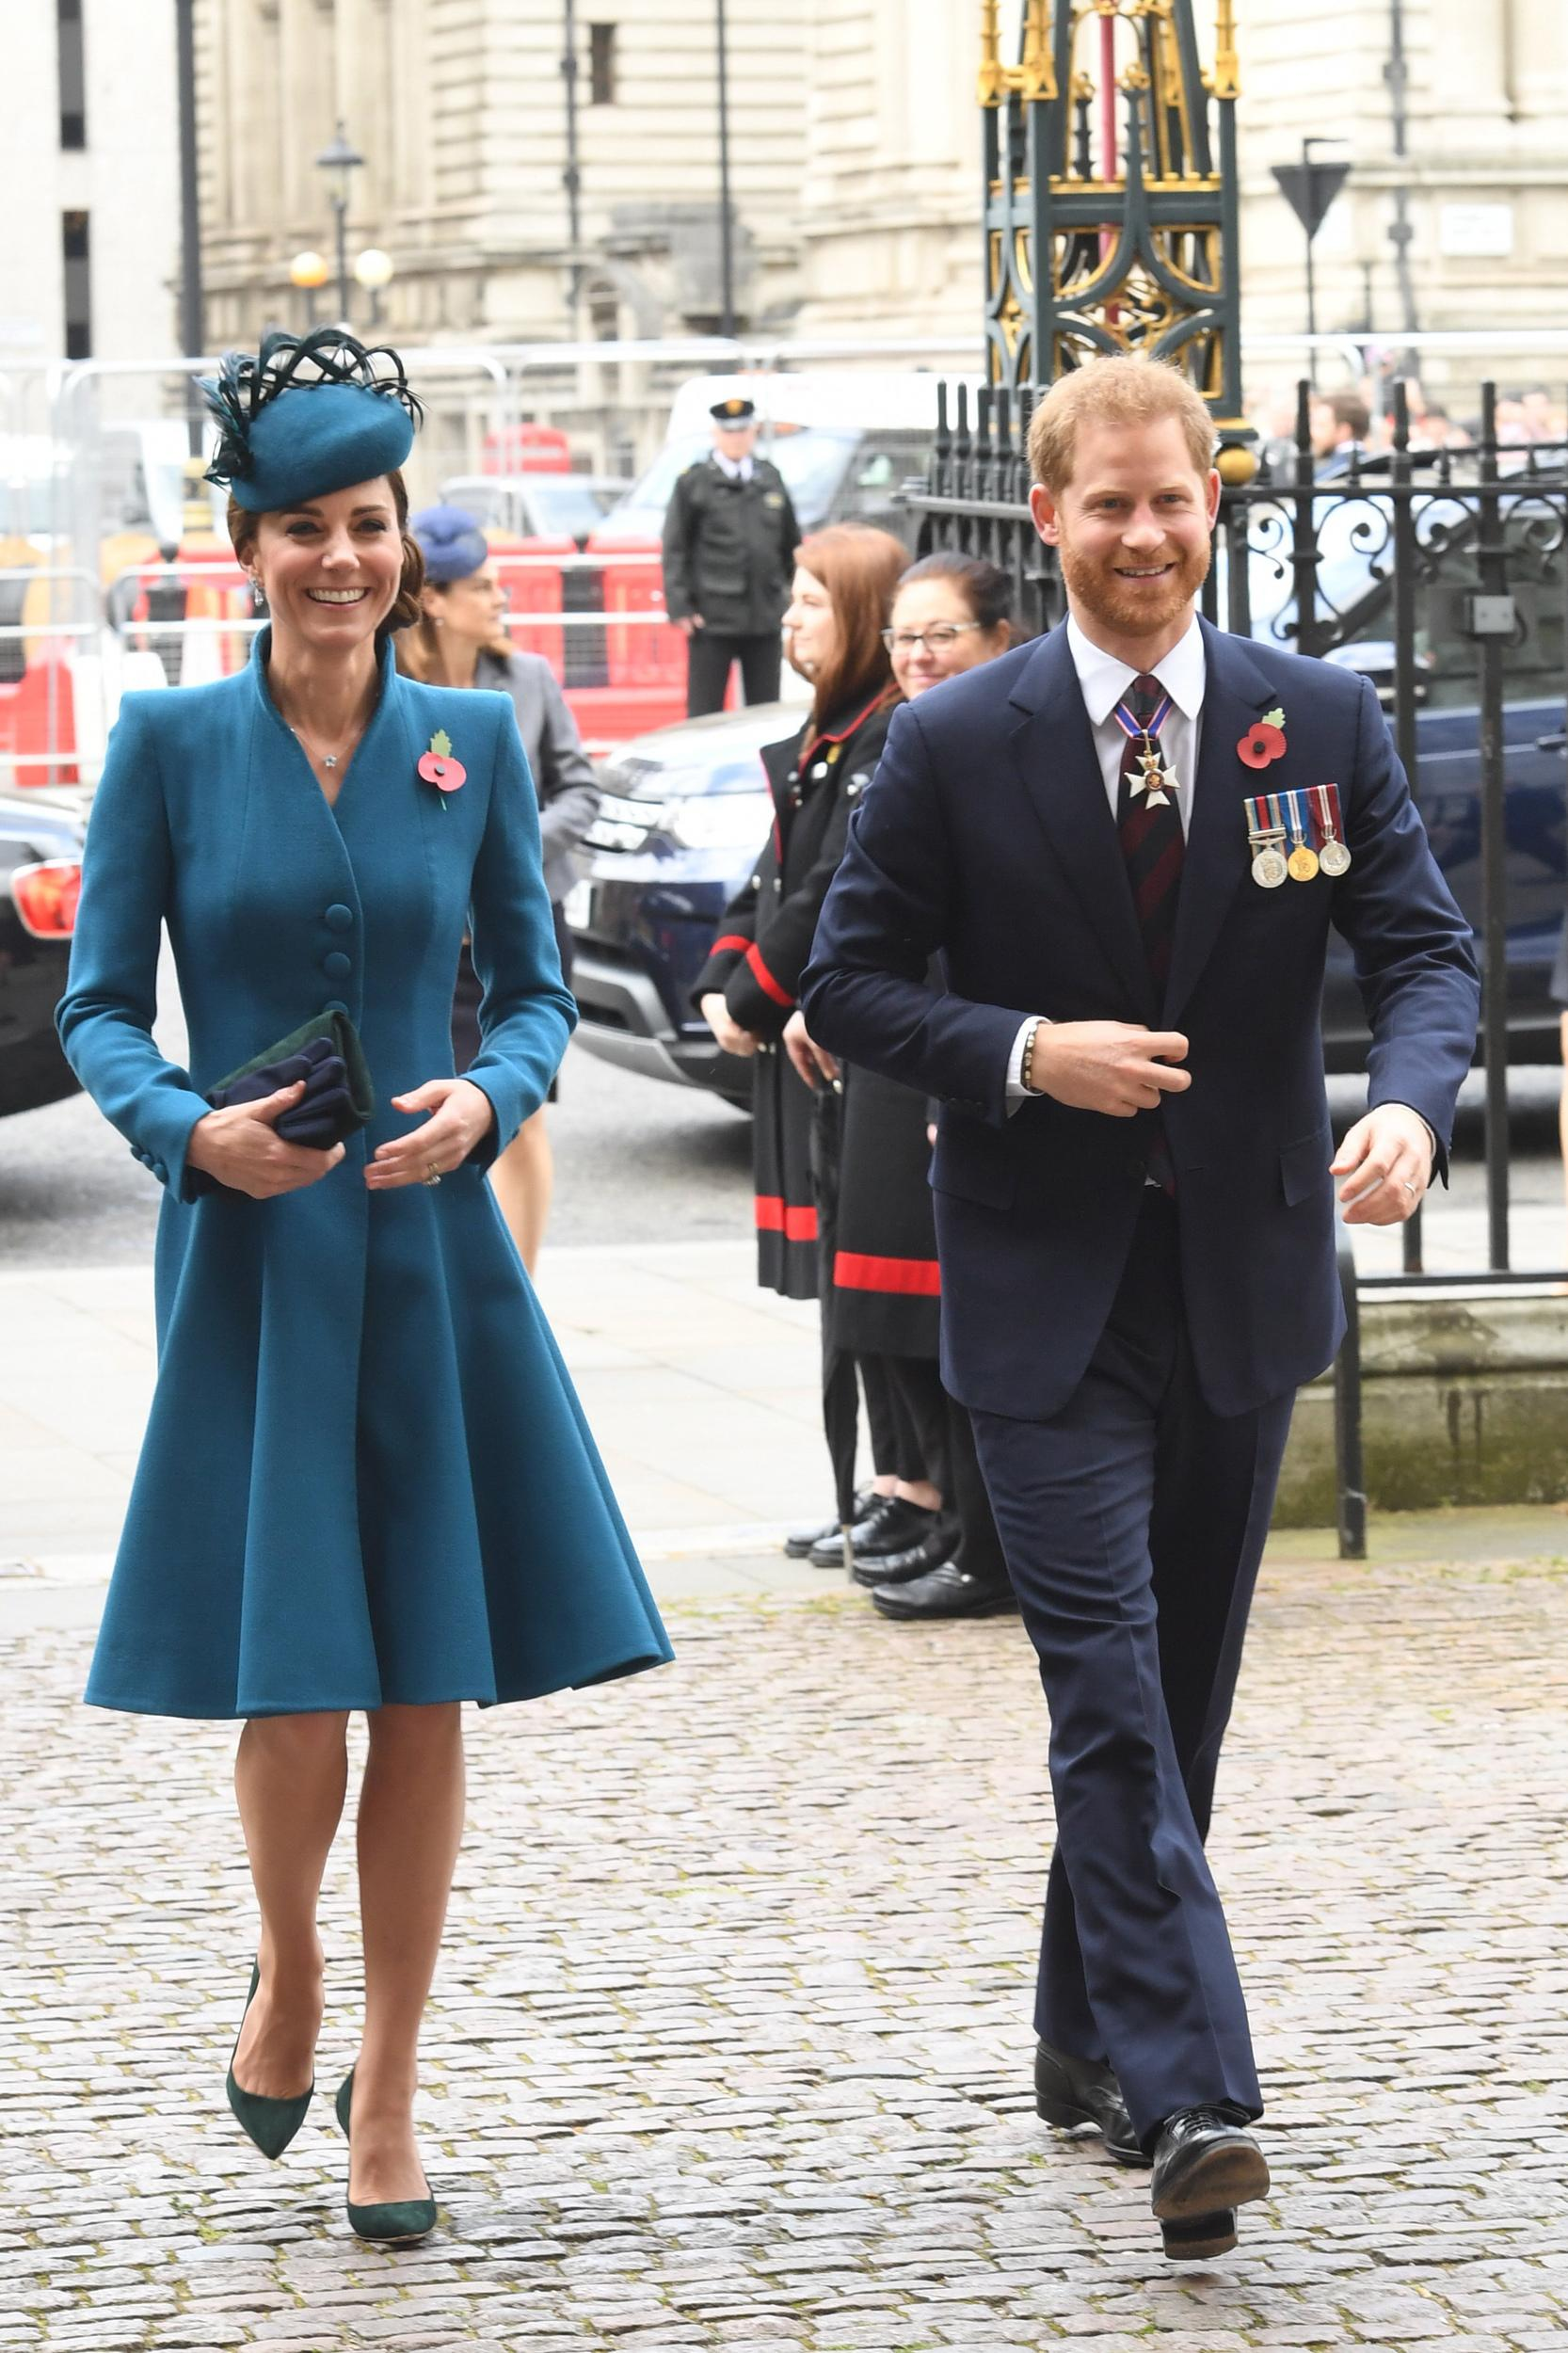 TOPSHOT - Britain's Catherine, Duchess of Cambridge, (L) and Britain's Prince Harry, Duke of Sussex, (R) arrive to attend a service of commemoration and thanksgiving to mark Anzac Day in Westminster Abbey in London on April 25, 2019. - Anzac Day marks the anniversary of the first major military action fought by Australian and New Zealand forces during the First World War. The Australian and New Zealand Army Corps (ANZAC) landed at Gallipoli in Turkey during World War I. (Photo by Jeremy Selwyn / AFP)        (Photo credit should read JEREMY SELWYN/AFP/Getty Images)